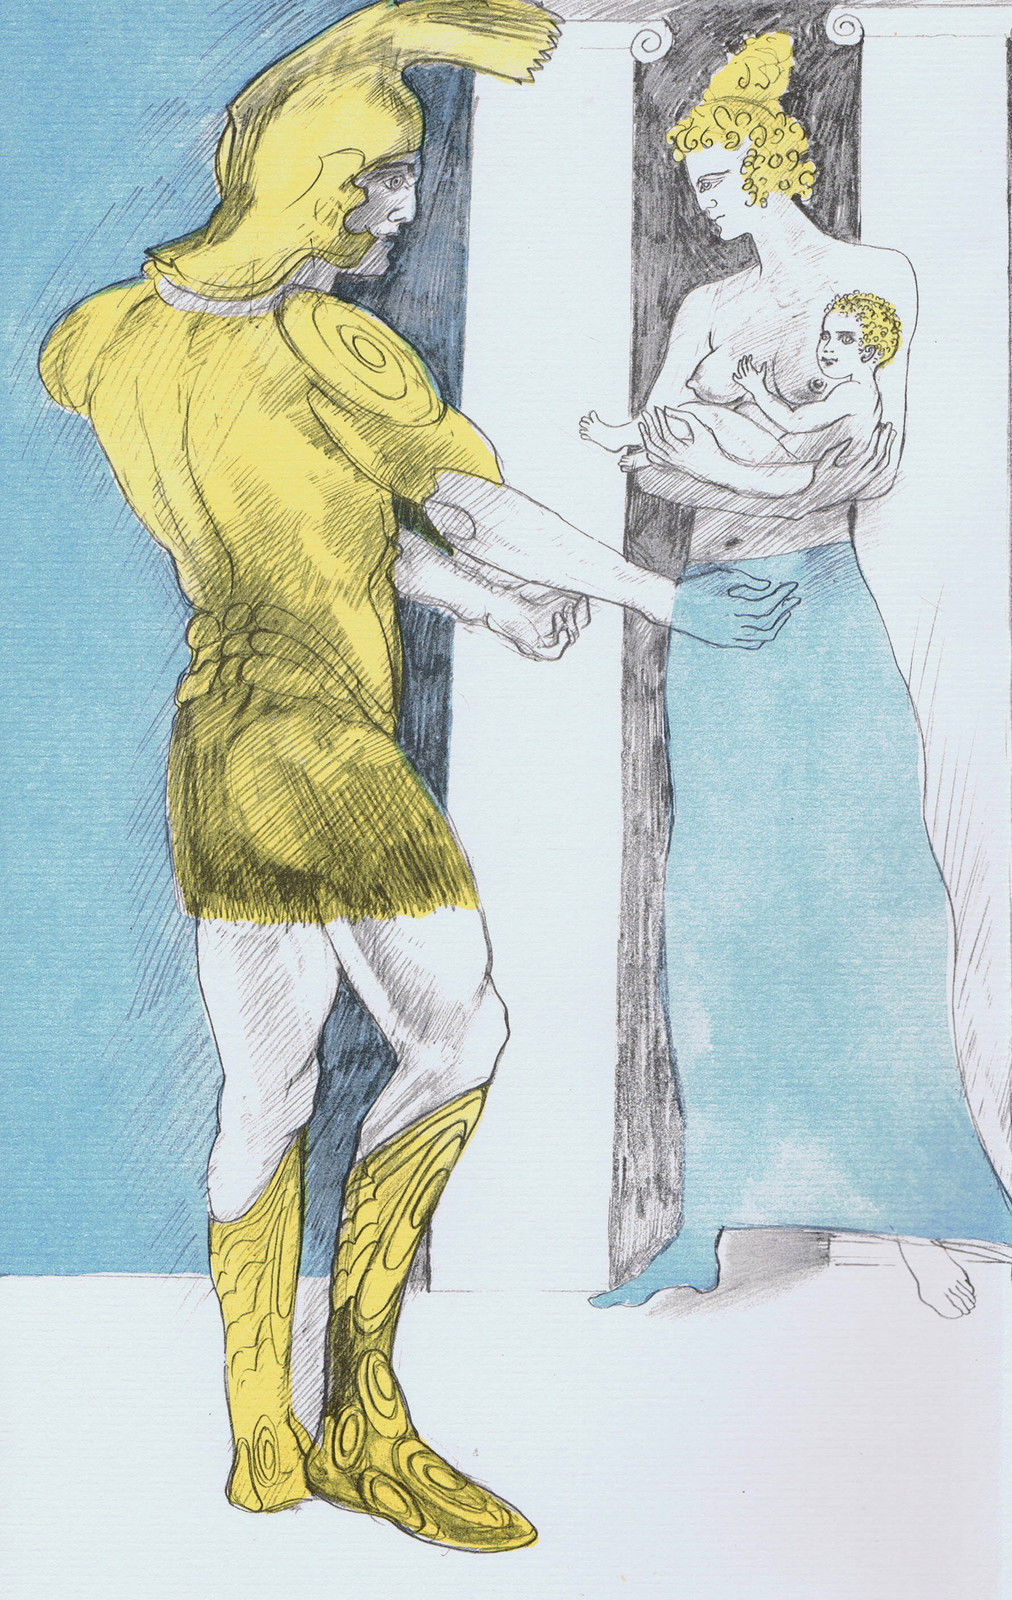 FRINK, E - Iliad, Glorious Hector held out his arms to take his boy.jpg